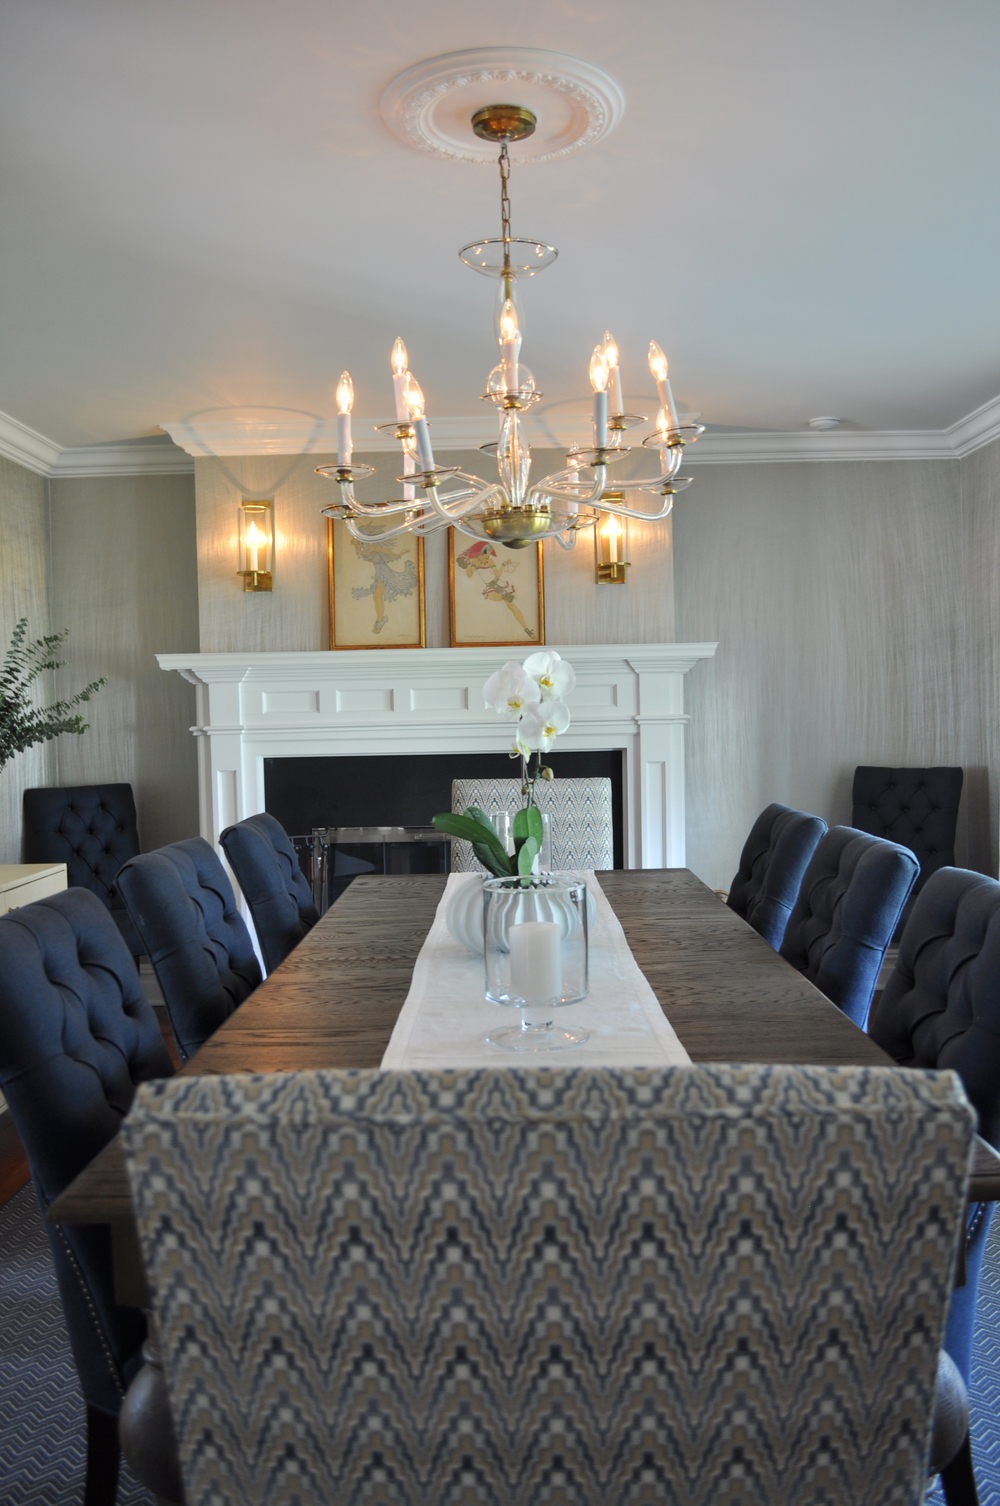 Mamaroneck NY_Classic Dining Room_Innovations Wallcovering_Circa Sconces_Navy_Cream_Circa Brass Sconces_Kravet Host Chair Fabric_Interior Designer Kim A Mitchell_KAM DESIGN_2016_for Web.jpg